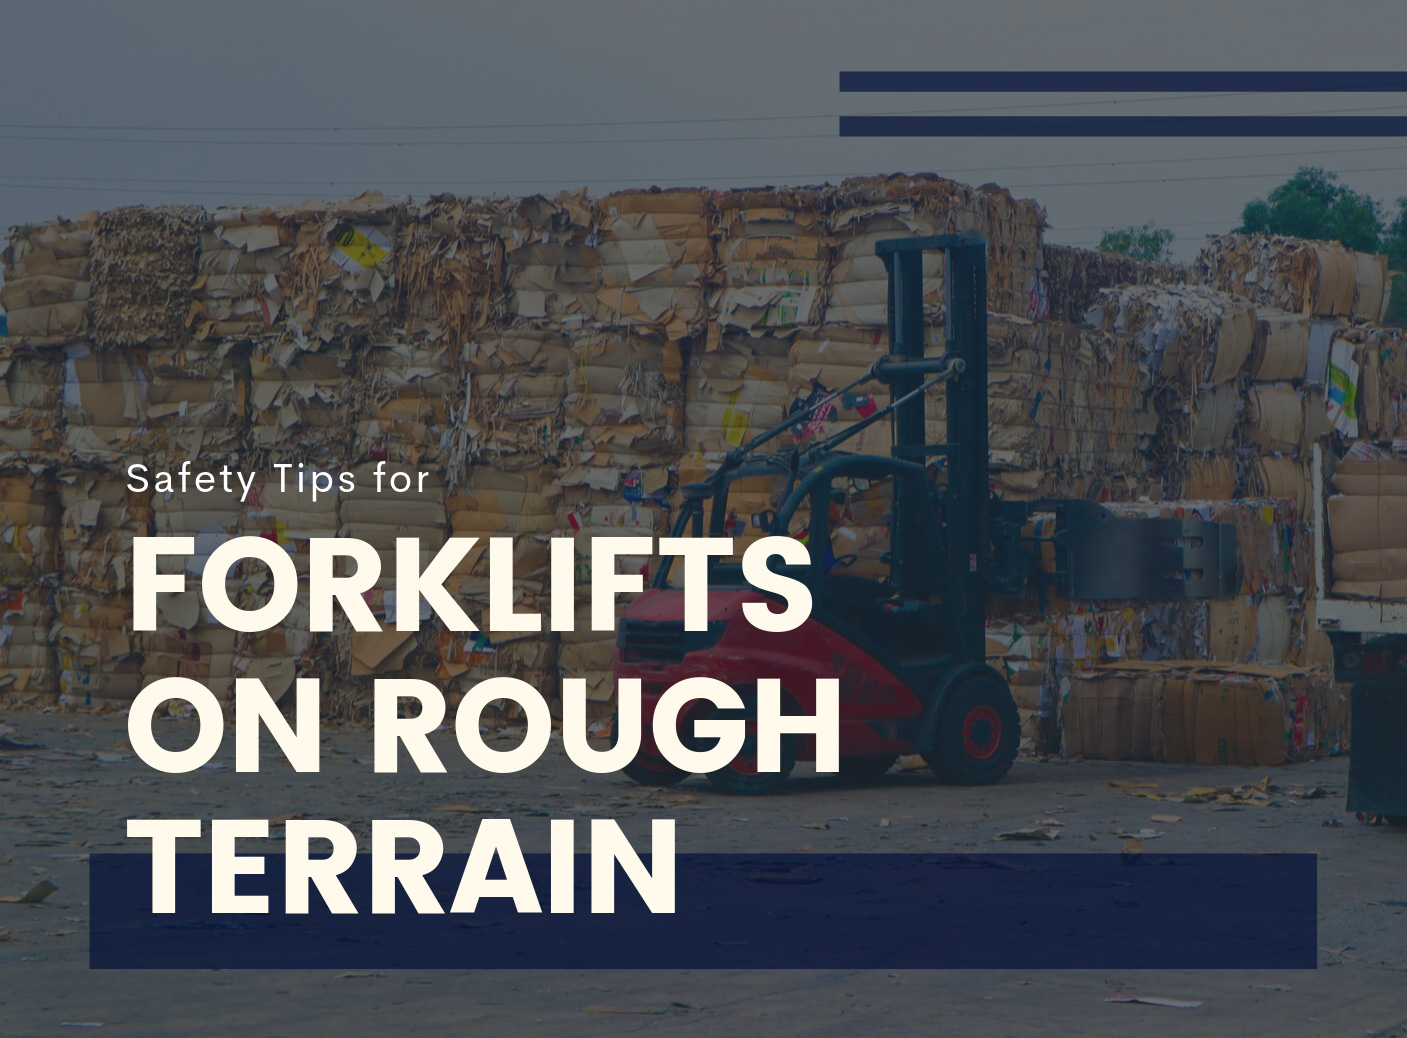 Safety Tips for Forklifts on Rough Terrain